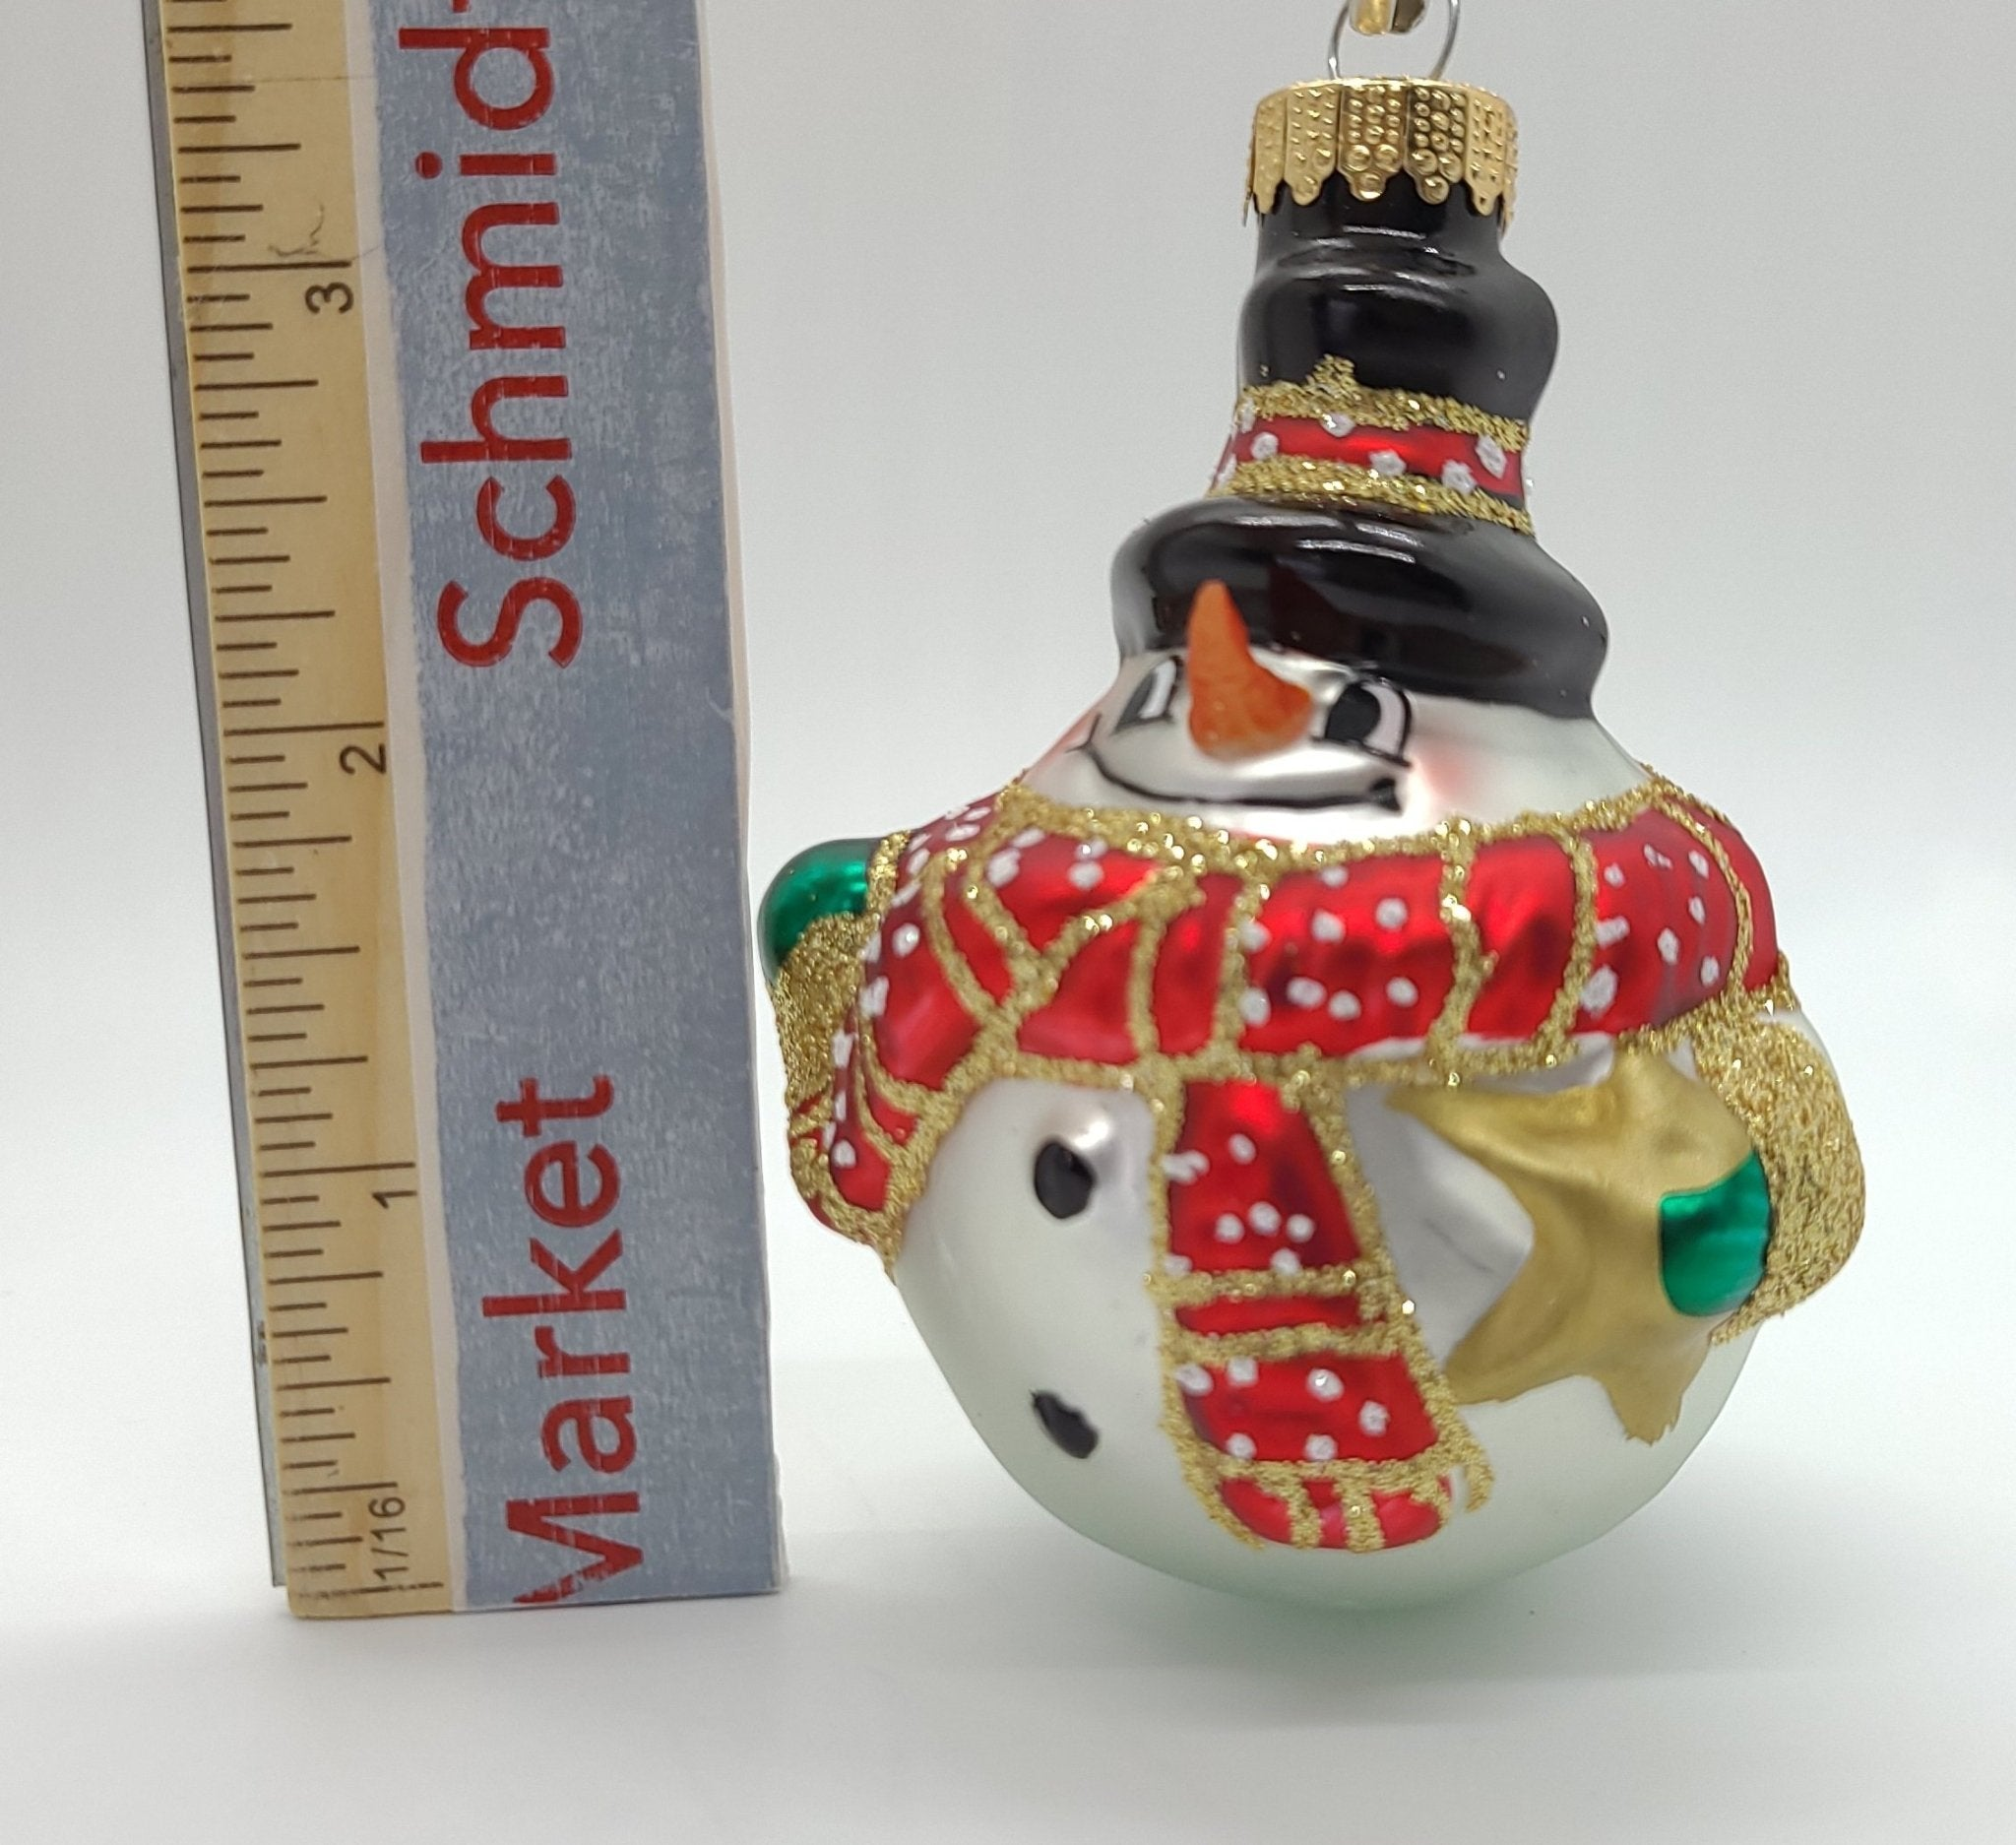 Snowball Glass Ornament - Schmidt Julemarked Julepynt